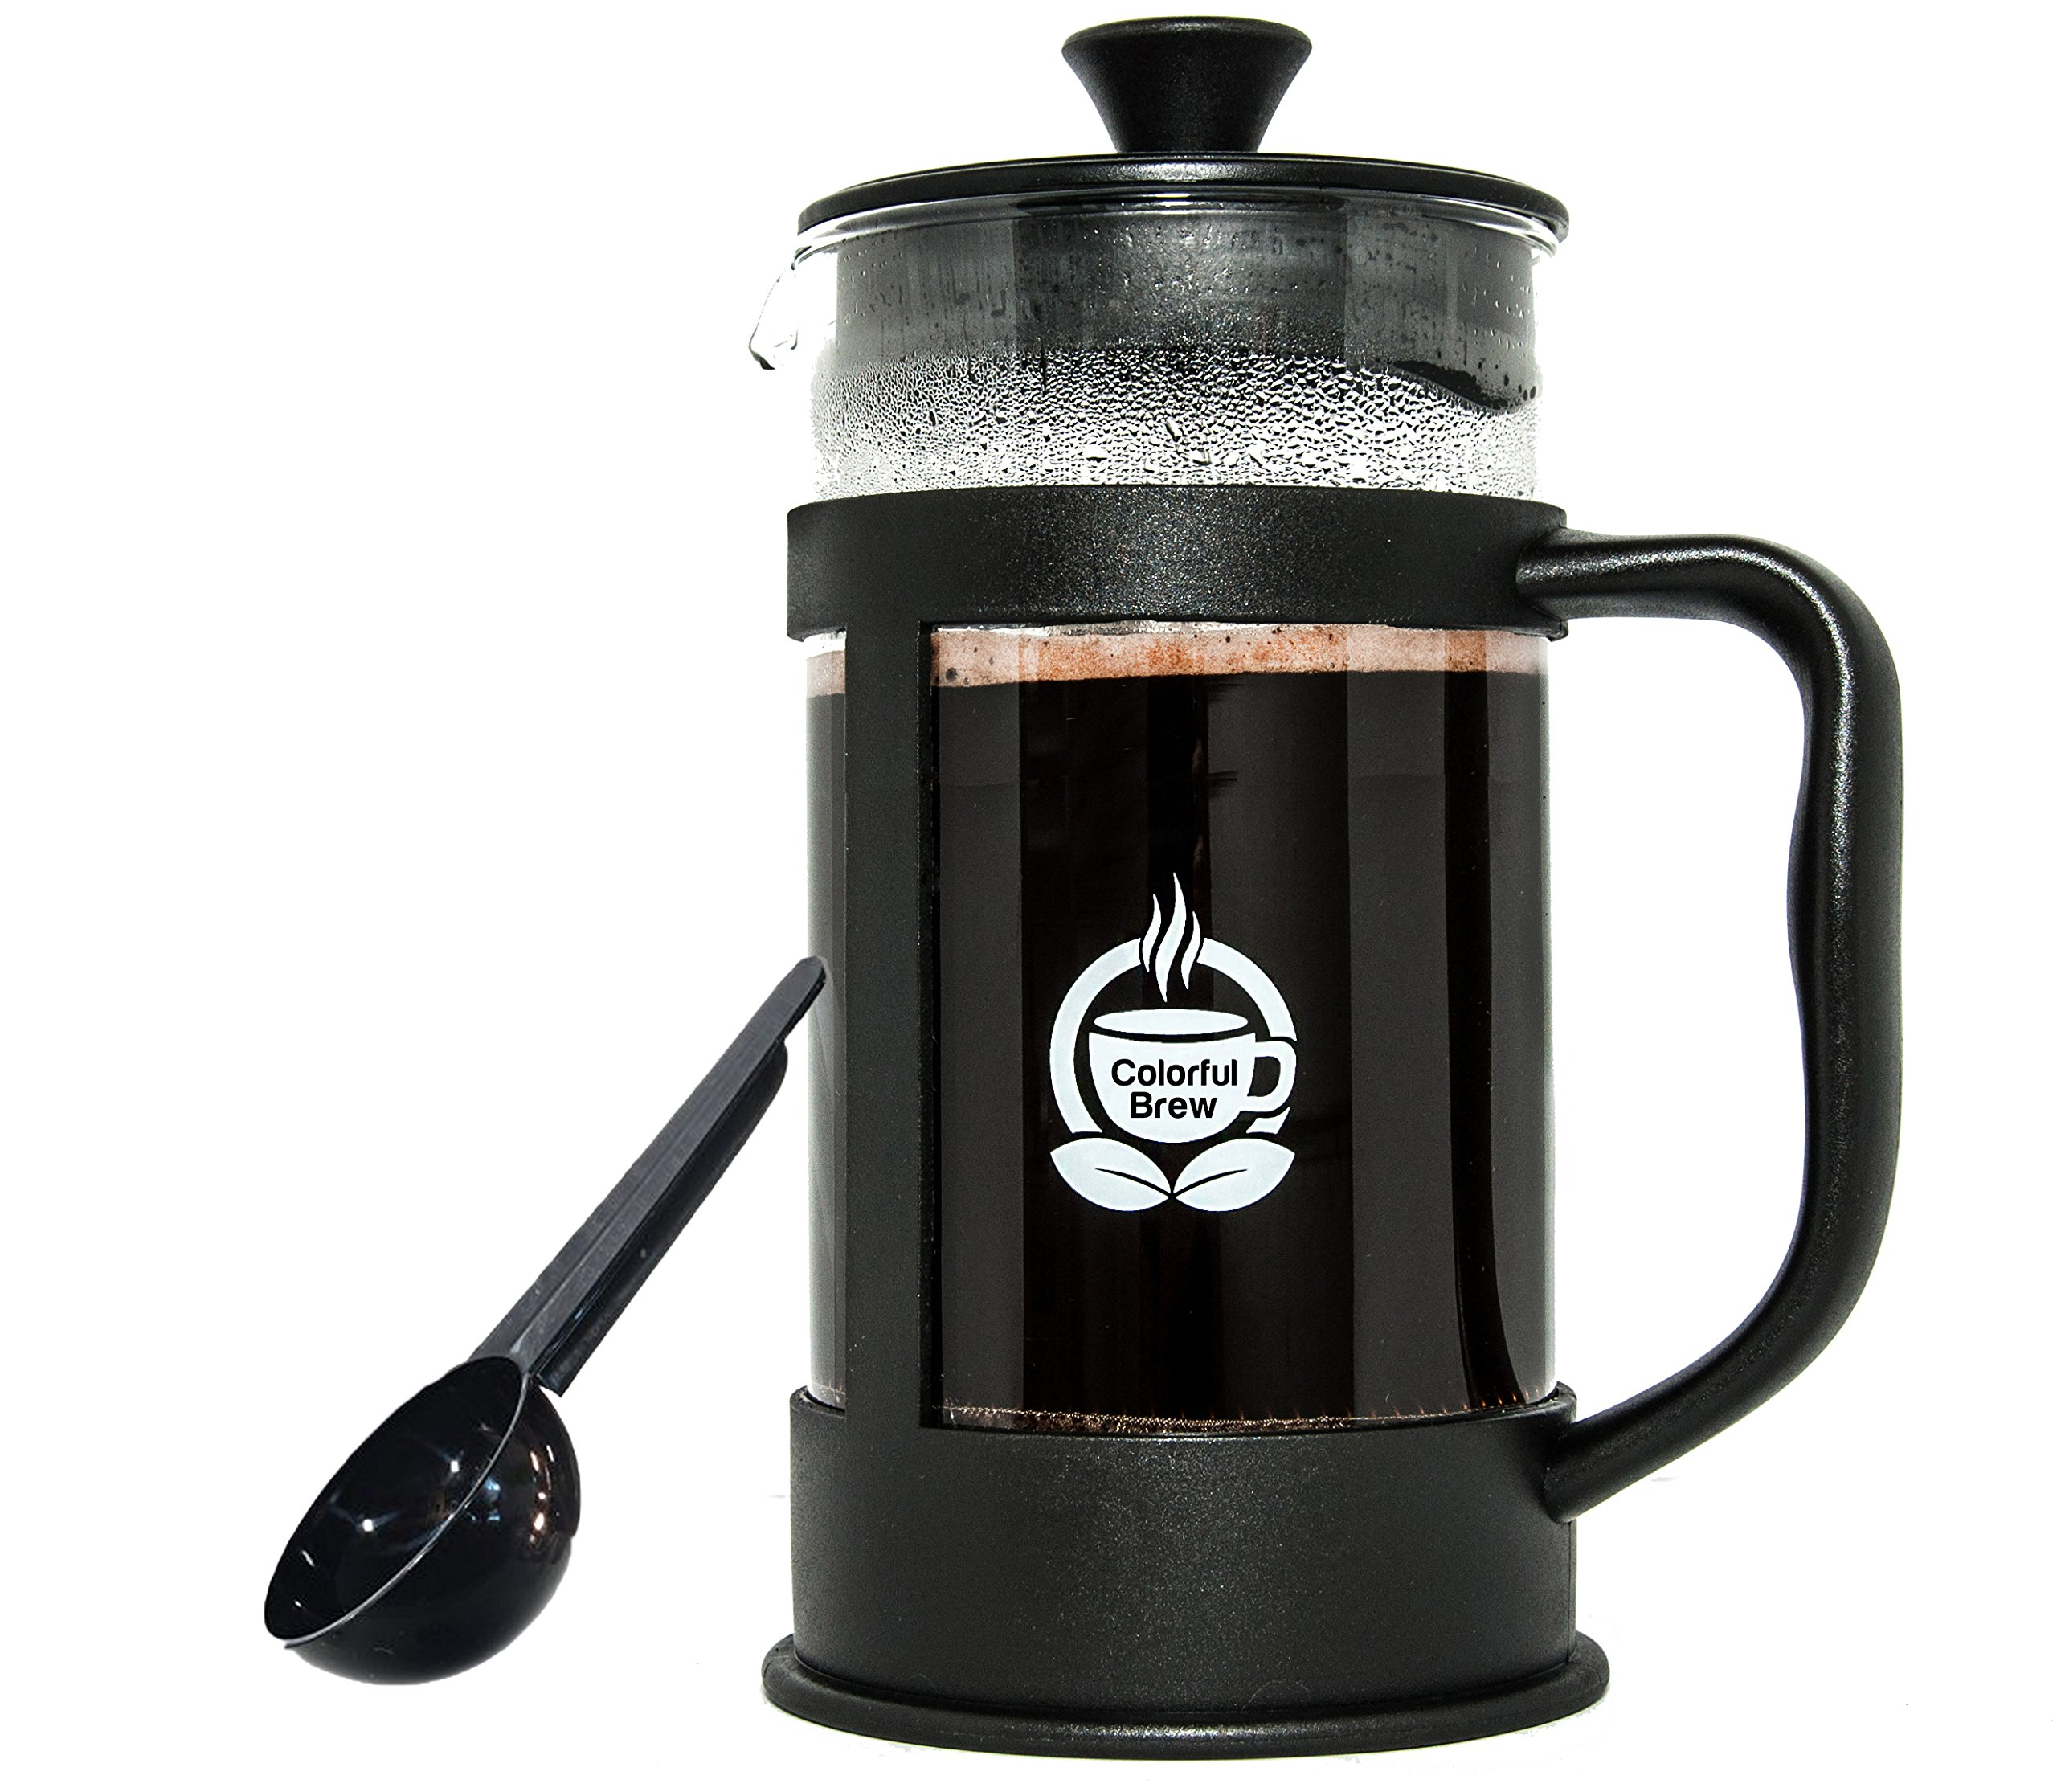 French Press Coffee Maker Large 34 Ounces Strongest and Thickest Glass by Colorful Brew